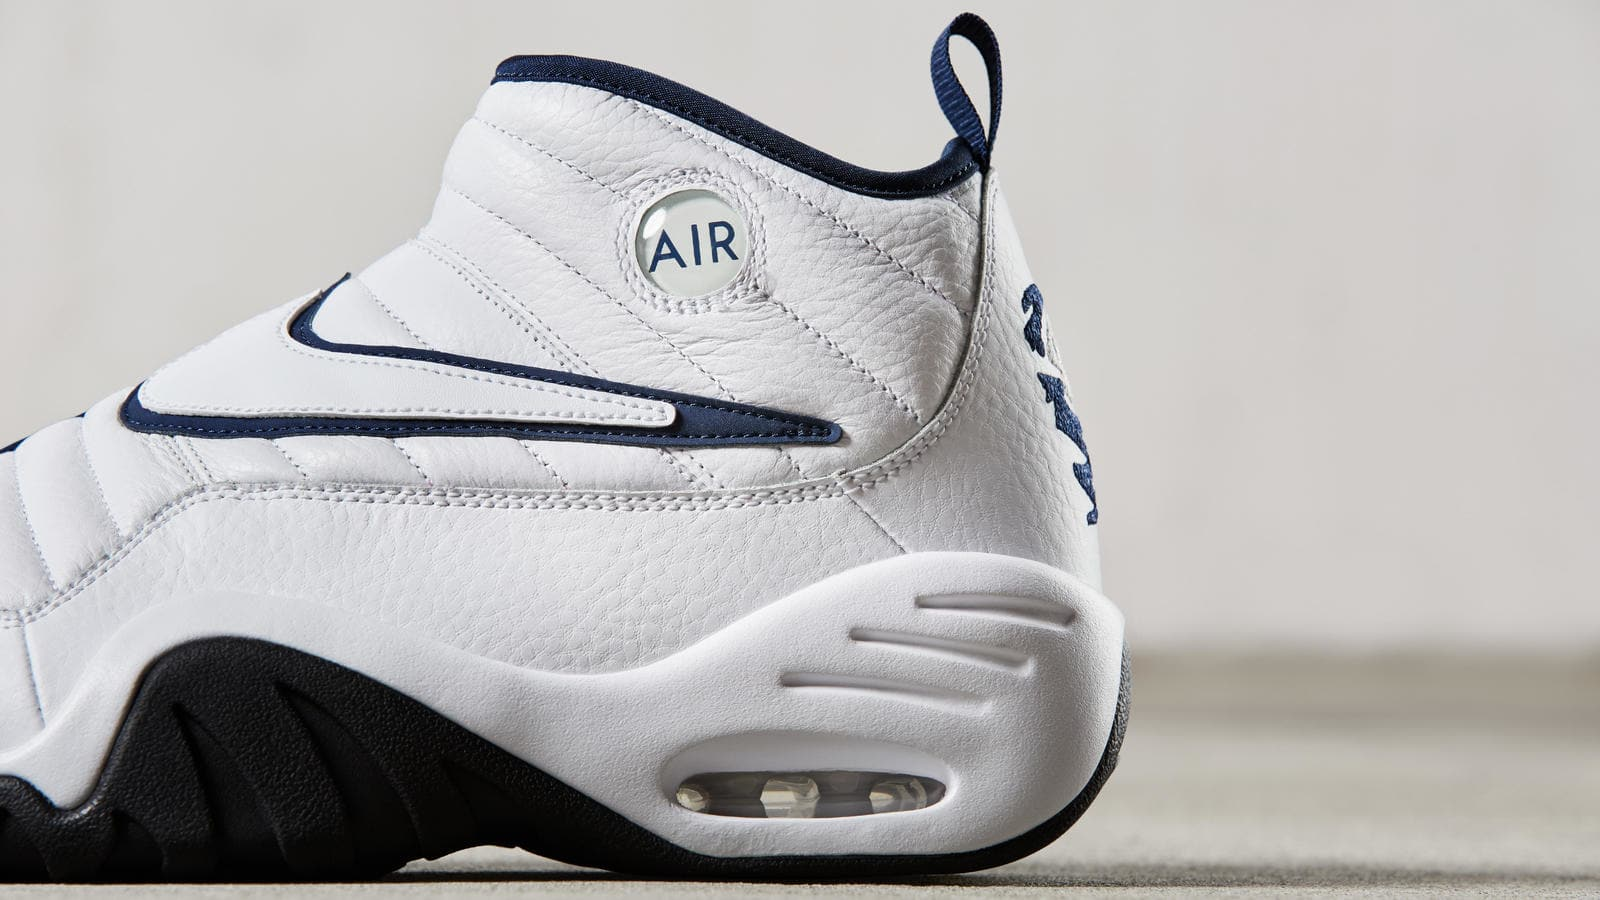 4db16be9e404 ... nike-air-shake-ndestrukt-white-navy (2).jpg ...